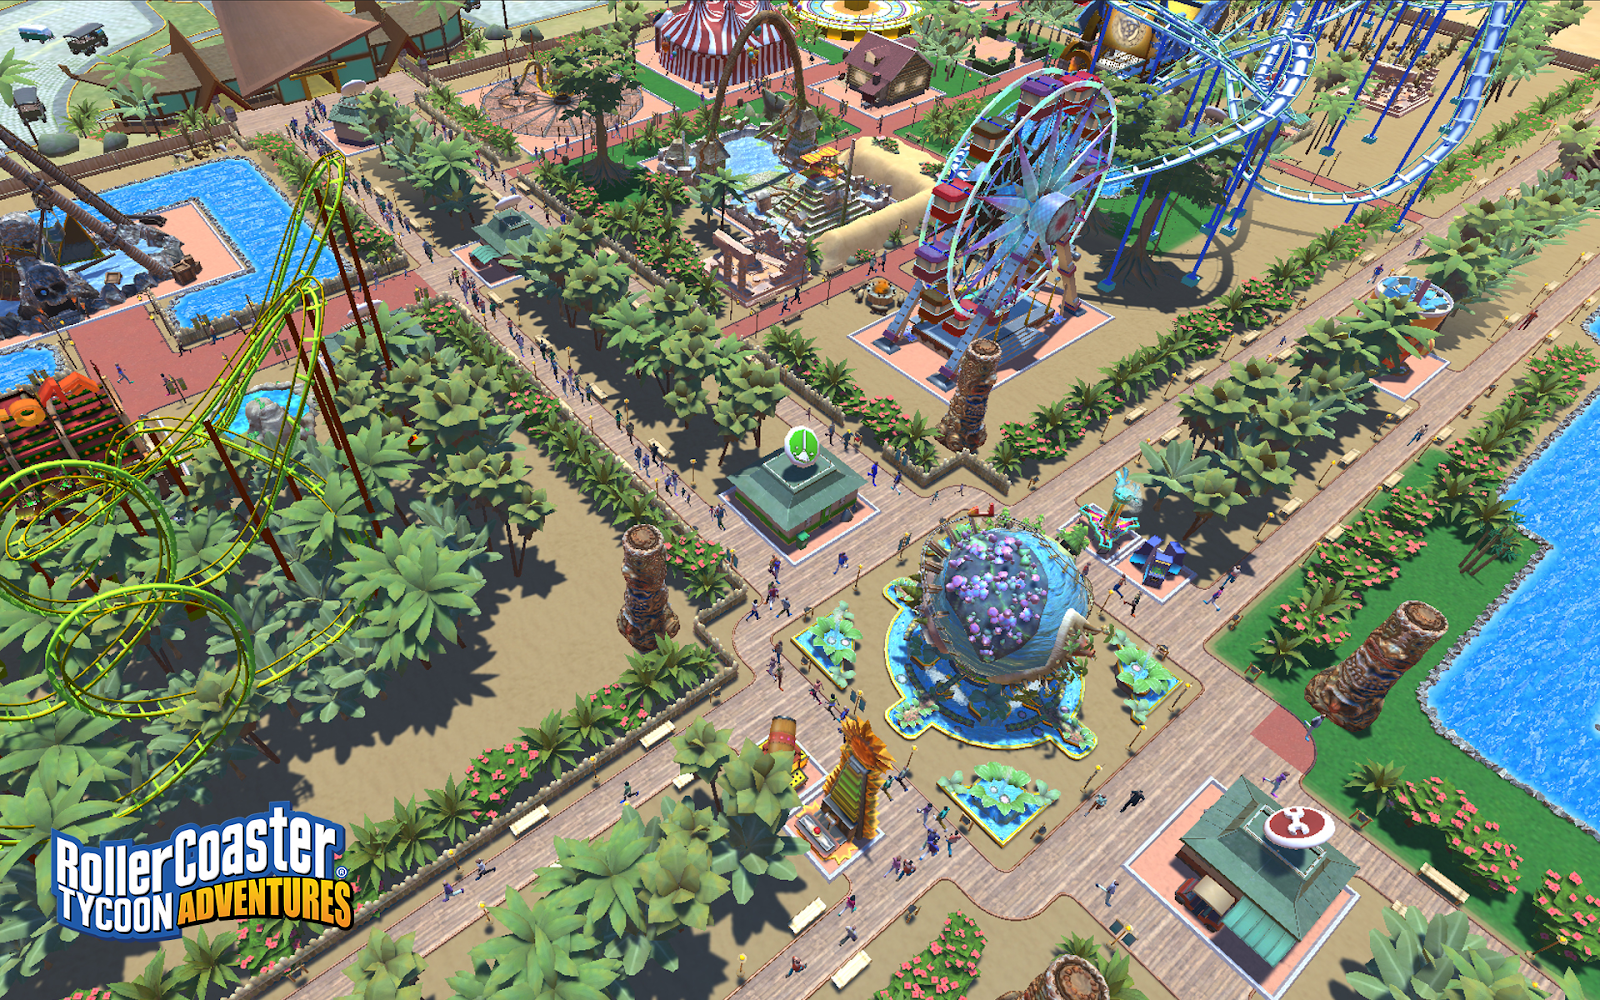 RollerCoaster Tycoon® Adventures Available Now for Windows PC Exclusively through the Epic Games store